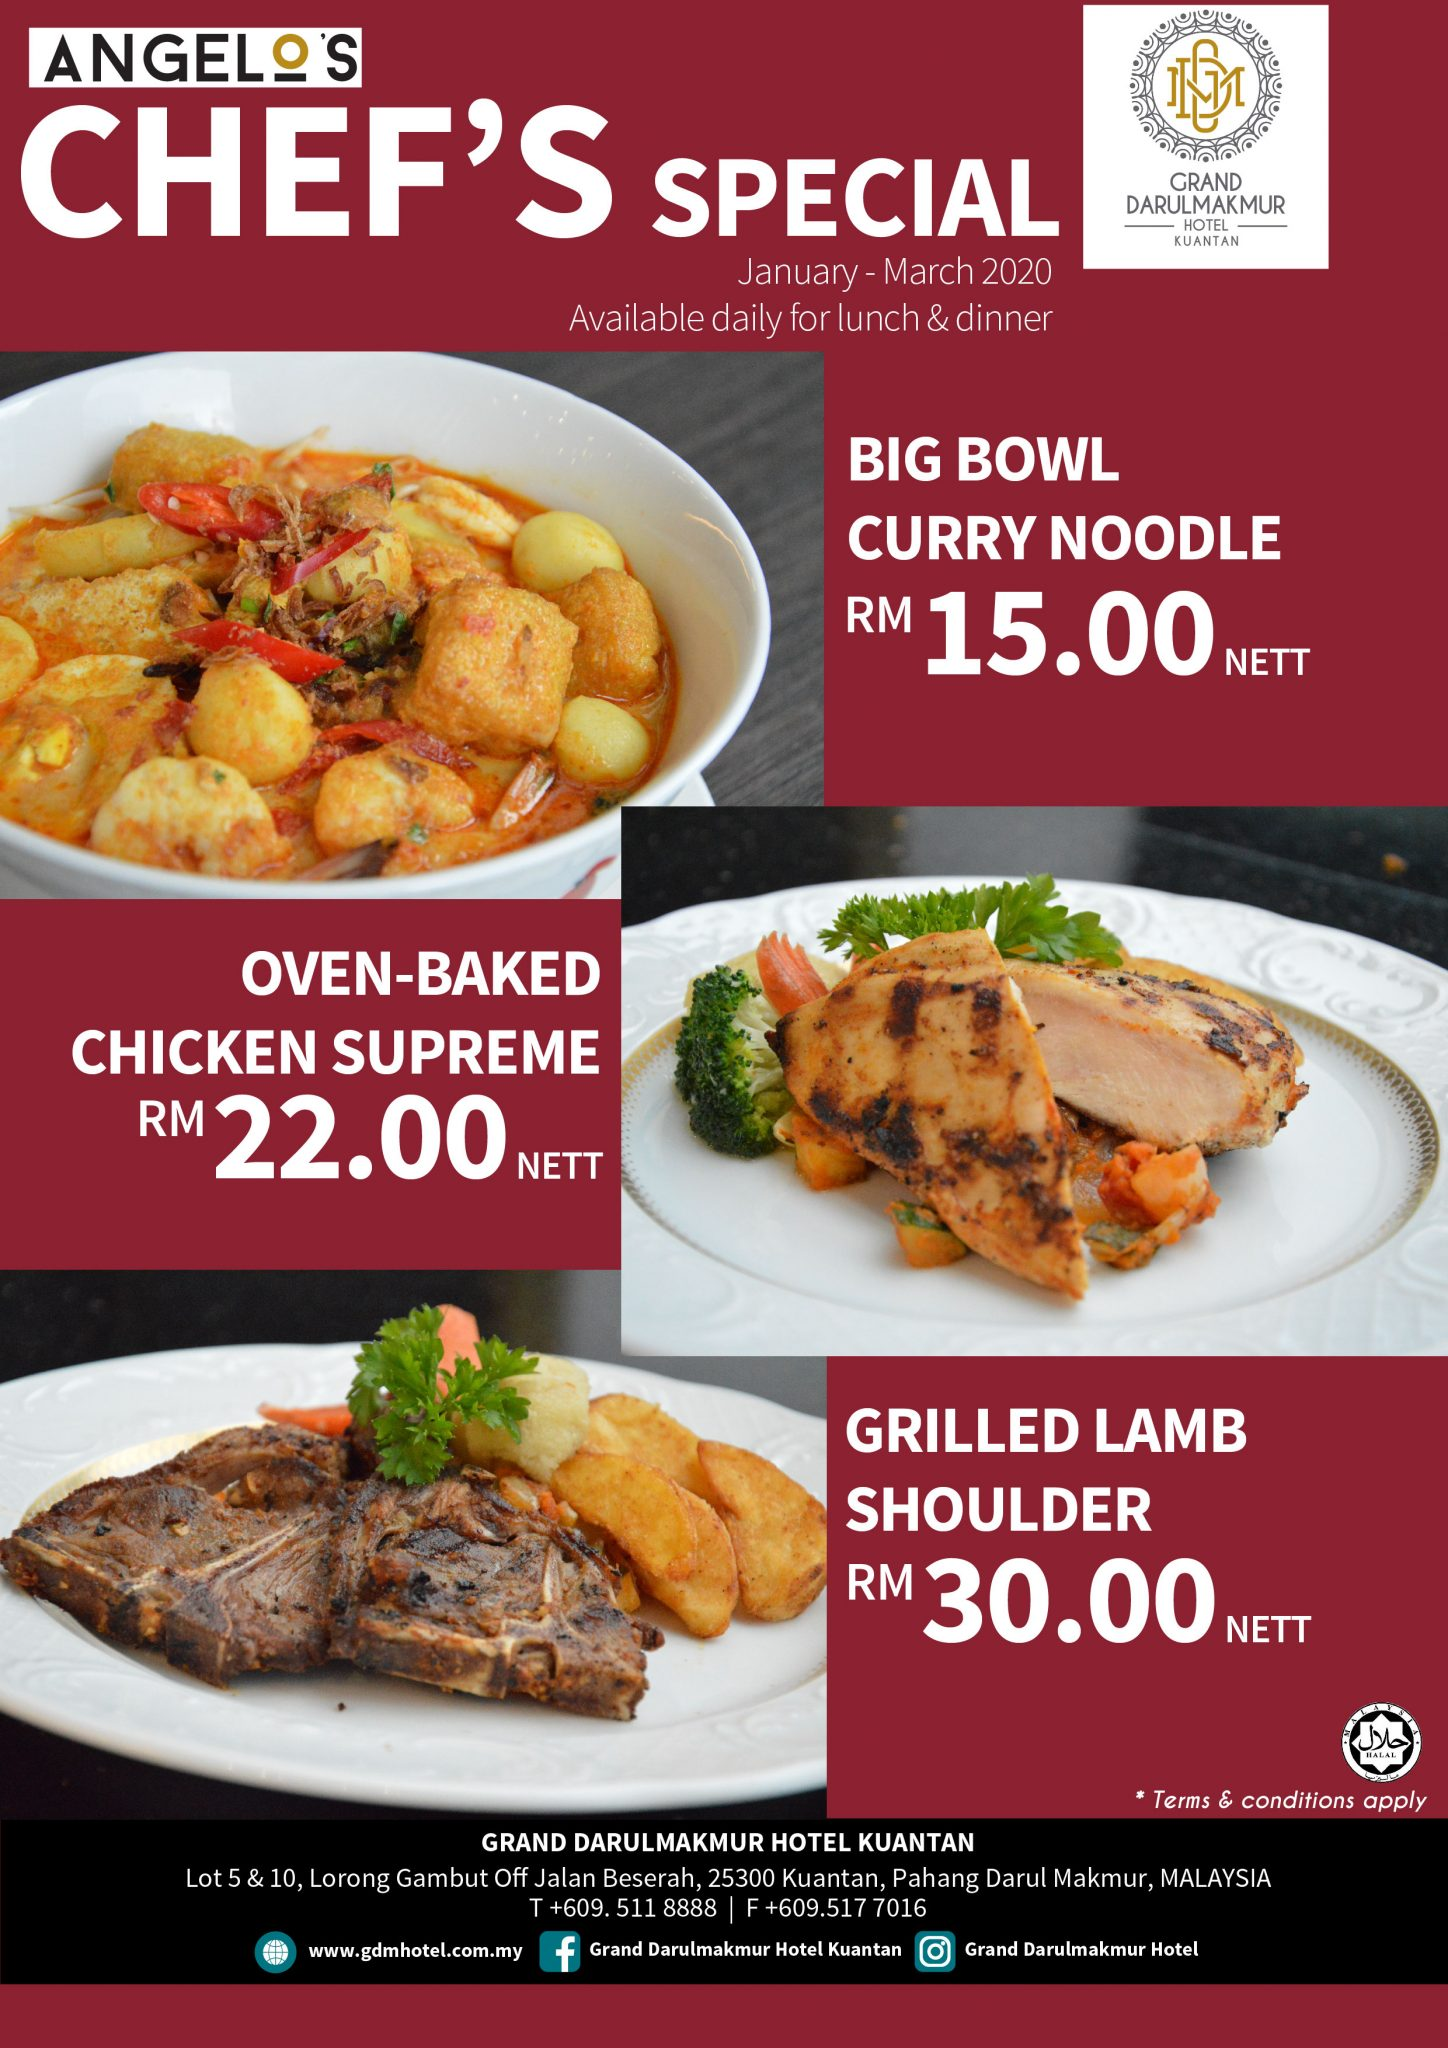 Angelo's Chef's Special